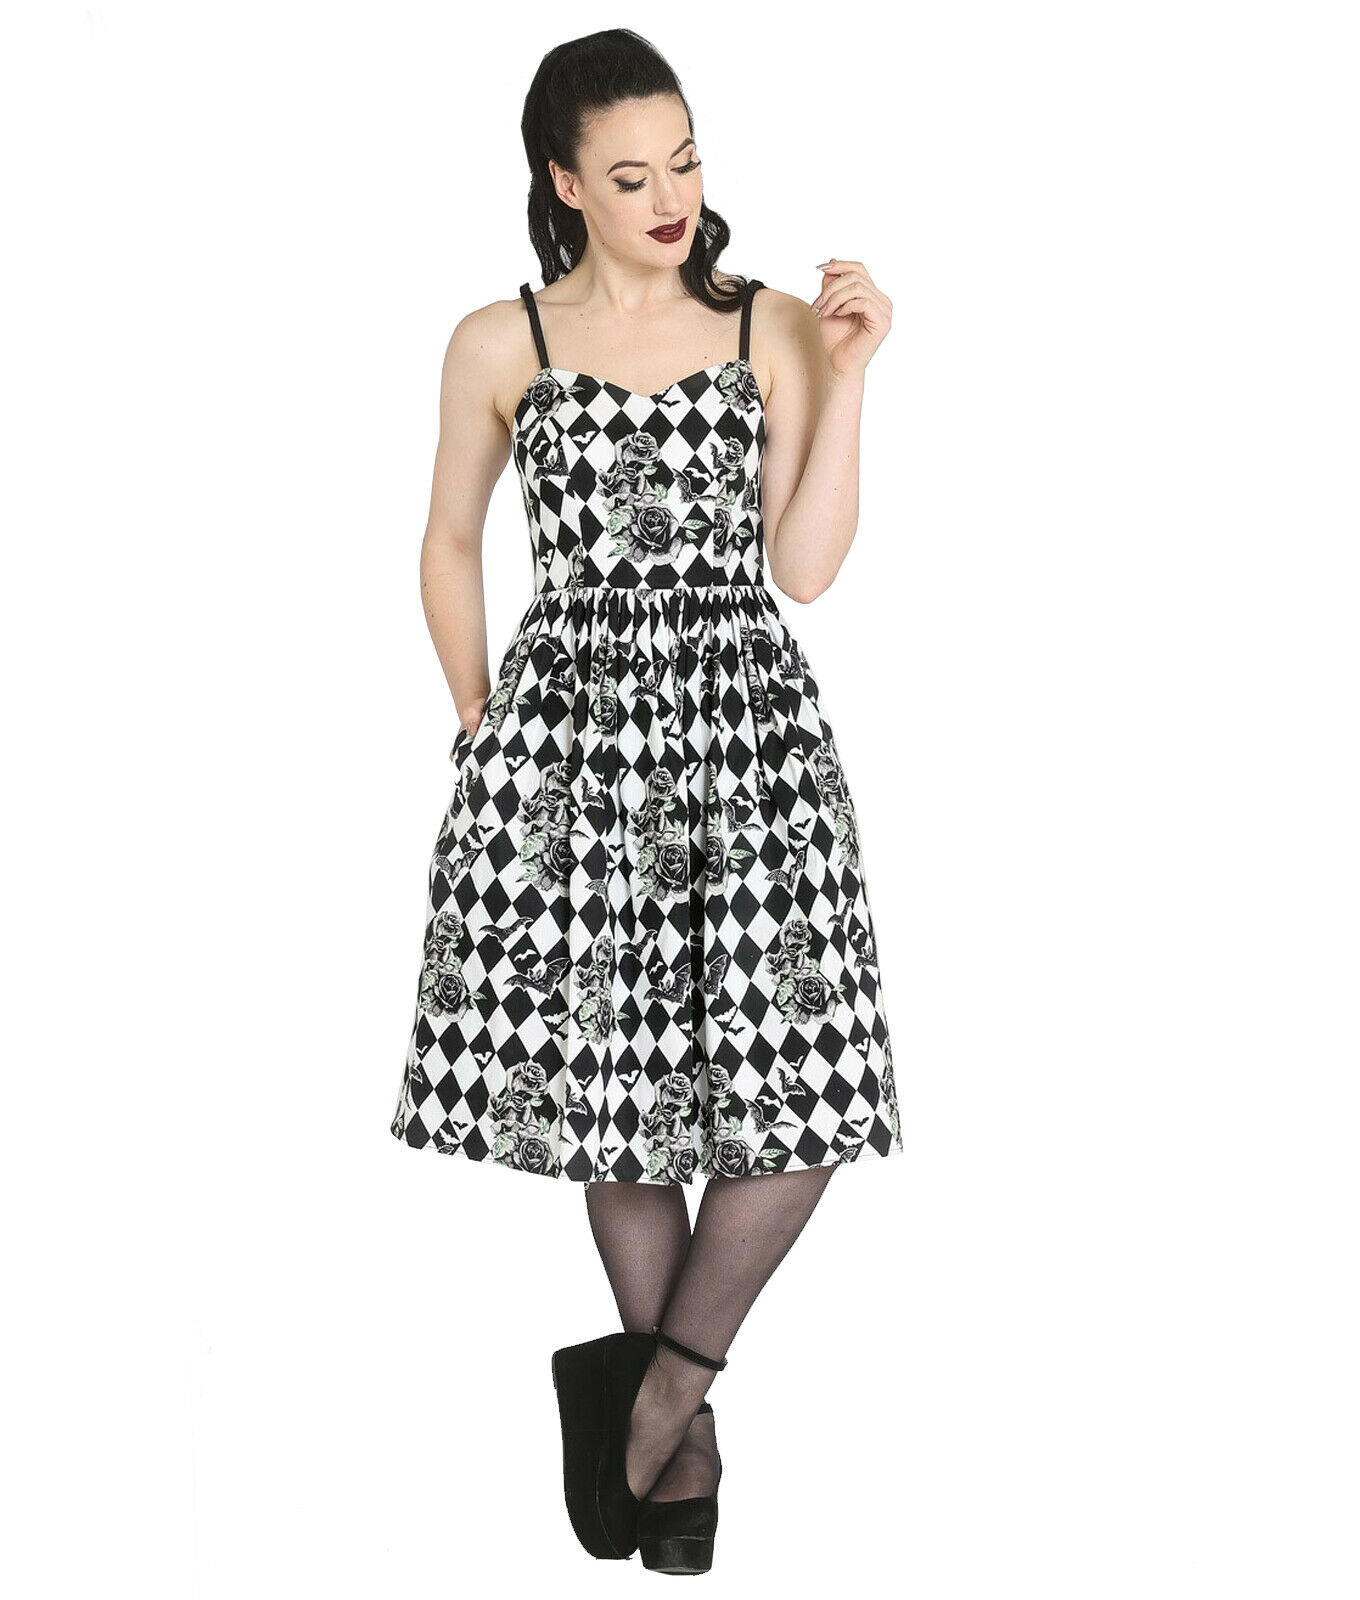 Hell-Bunny-Black-Harlequin-Pinup-50s-Gothic-Dress-HAUNTLEY-Bats-Roses-All-Sizes thumbnail 19